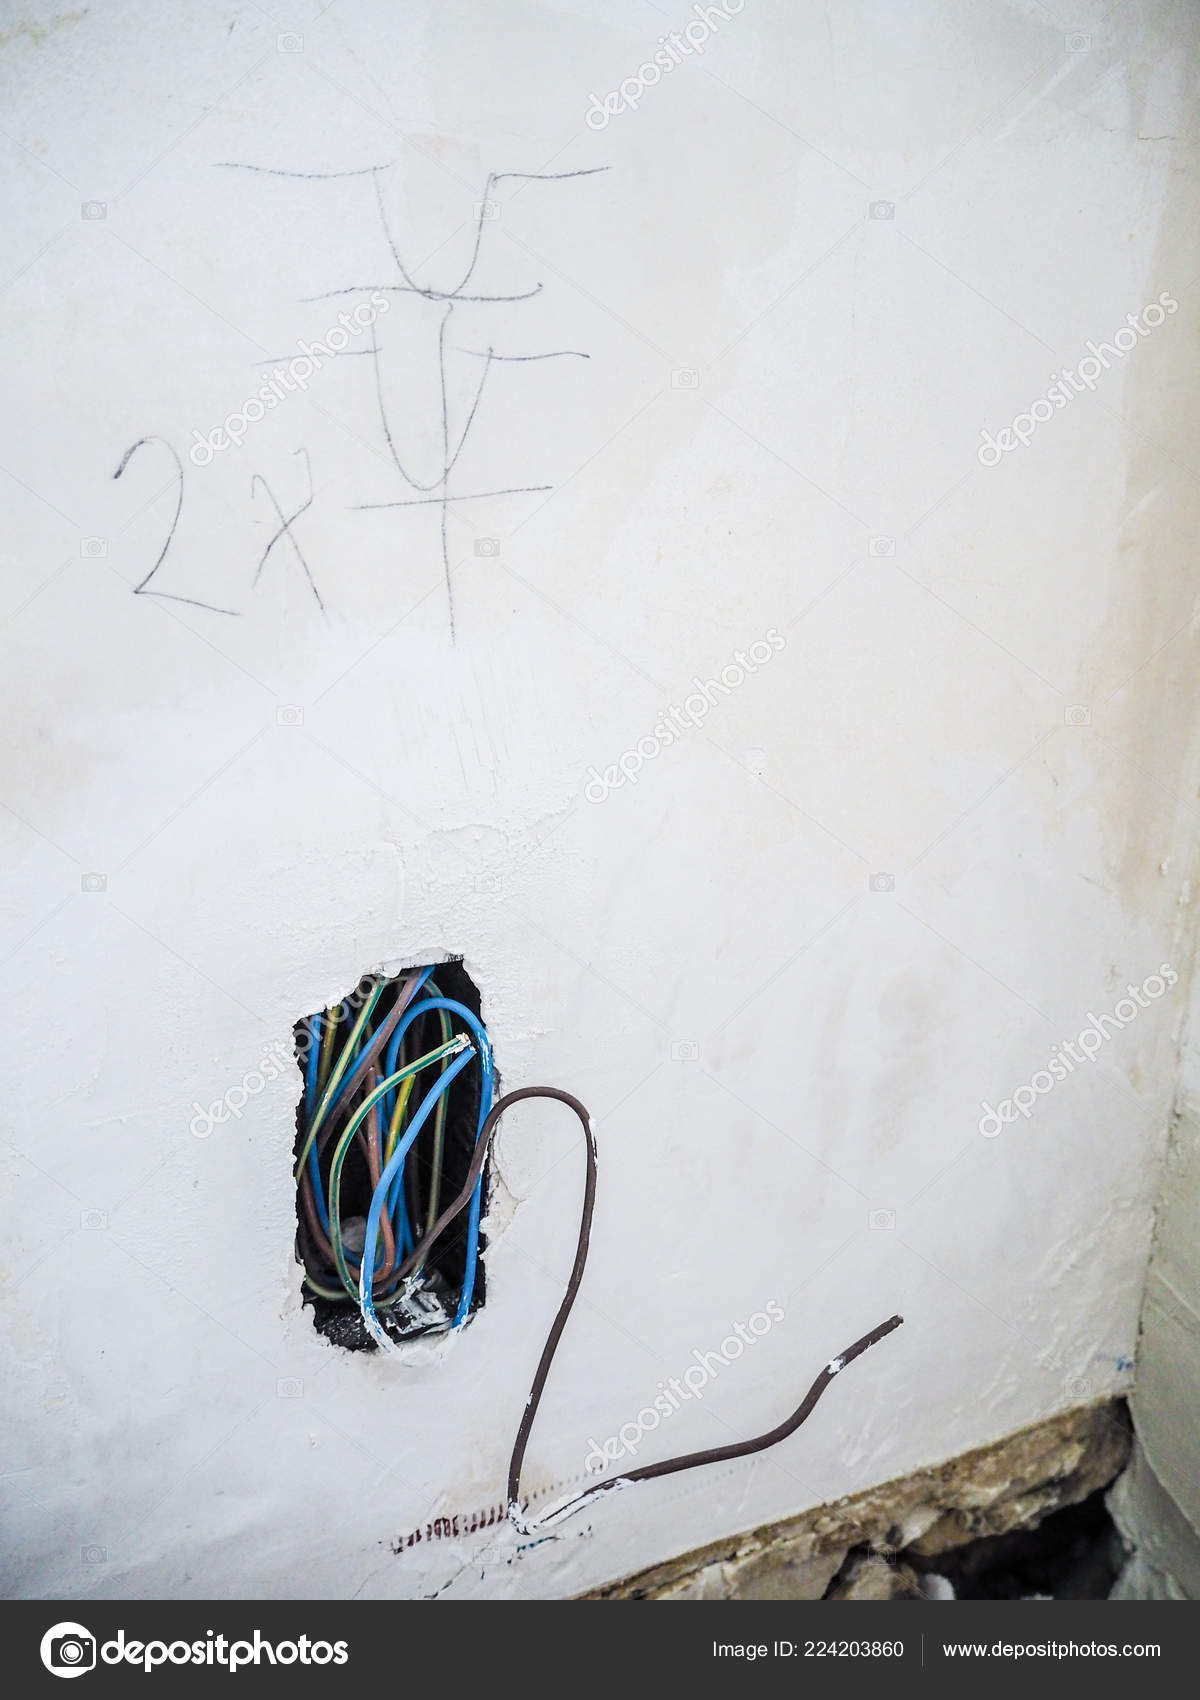 Exposed New Electrical Wiring While Renovating Old House ... on